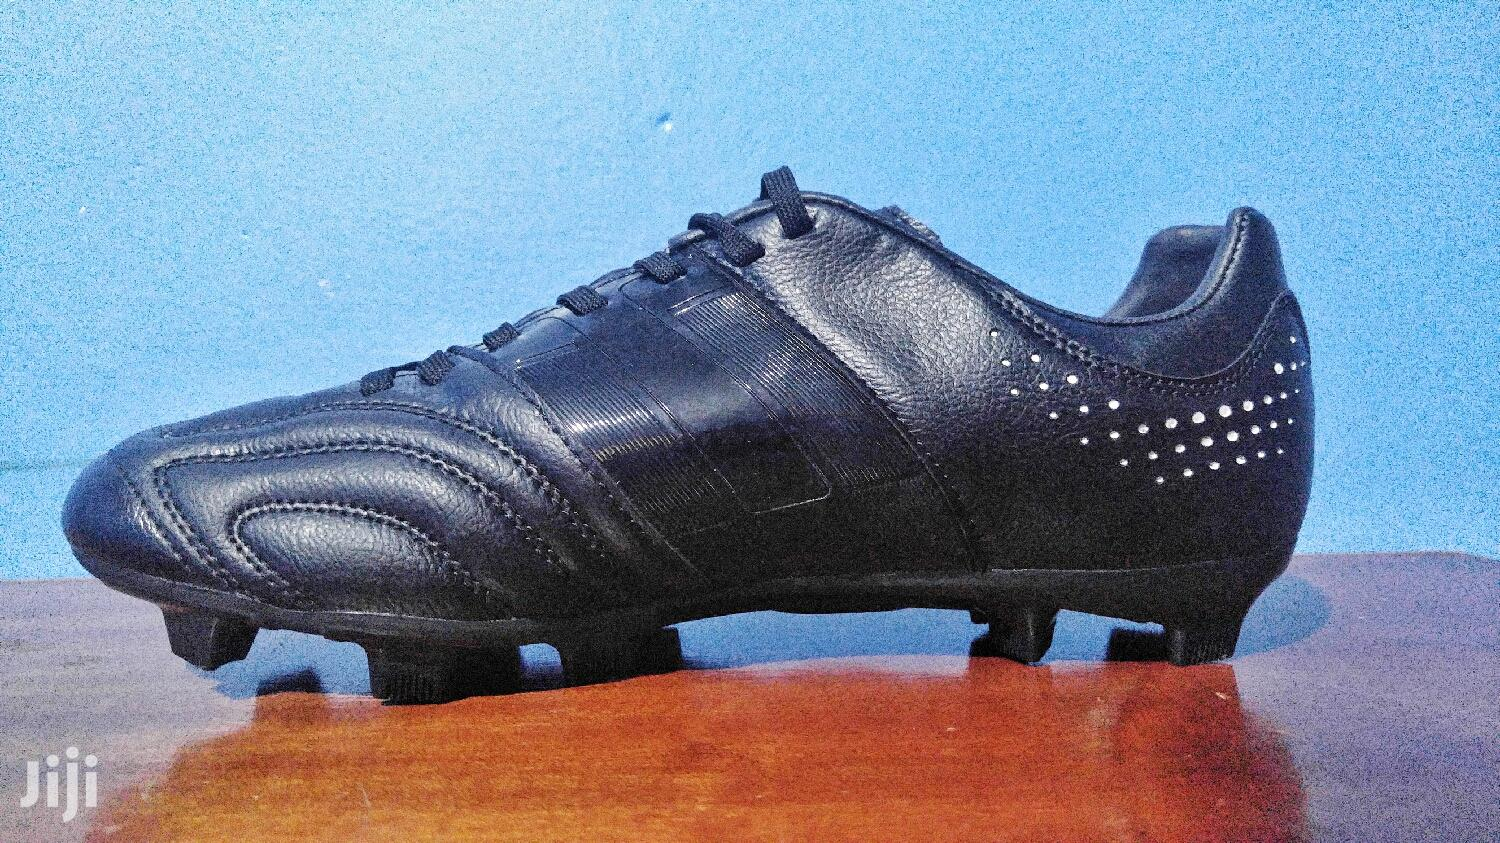 Black On Black Adidas 12pro By Meng Soccer Cleats Football Shoe